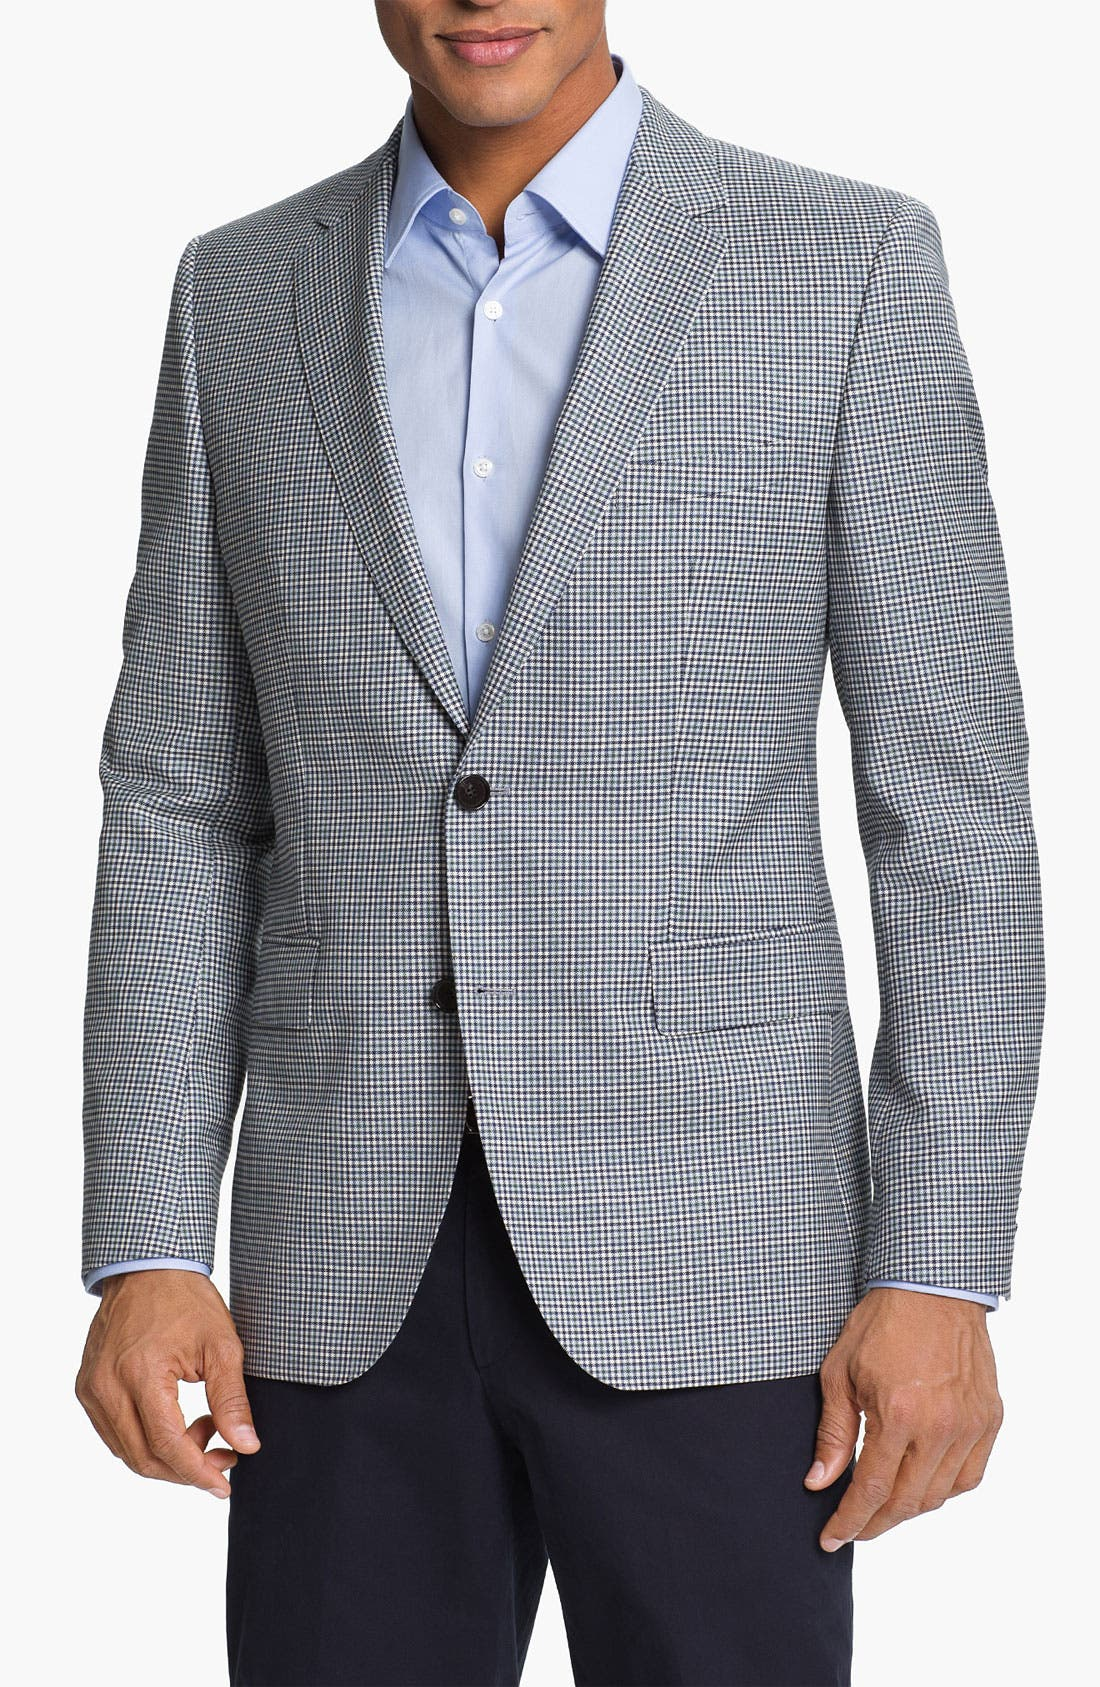 Main Image - BOSS HUGO BOSS 'James' Trim Fit Check Sportcoat